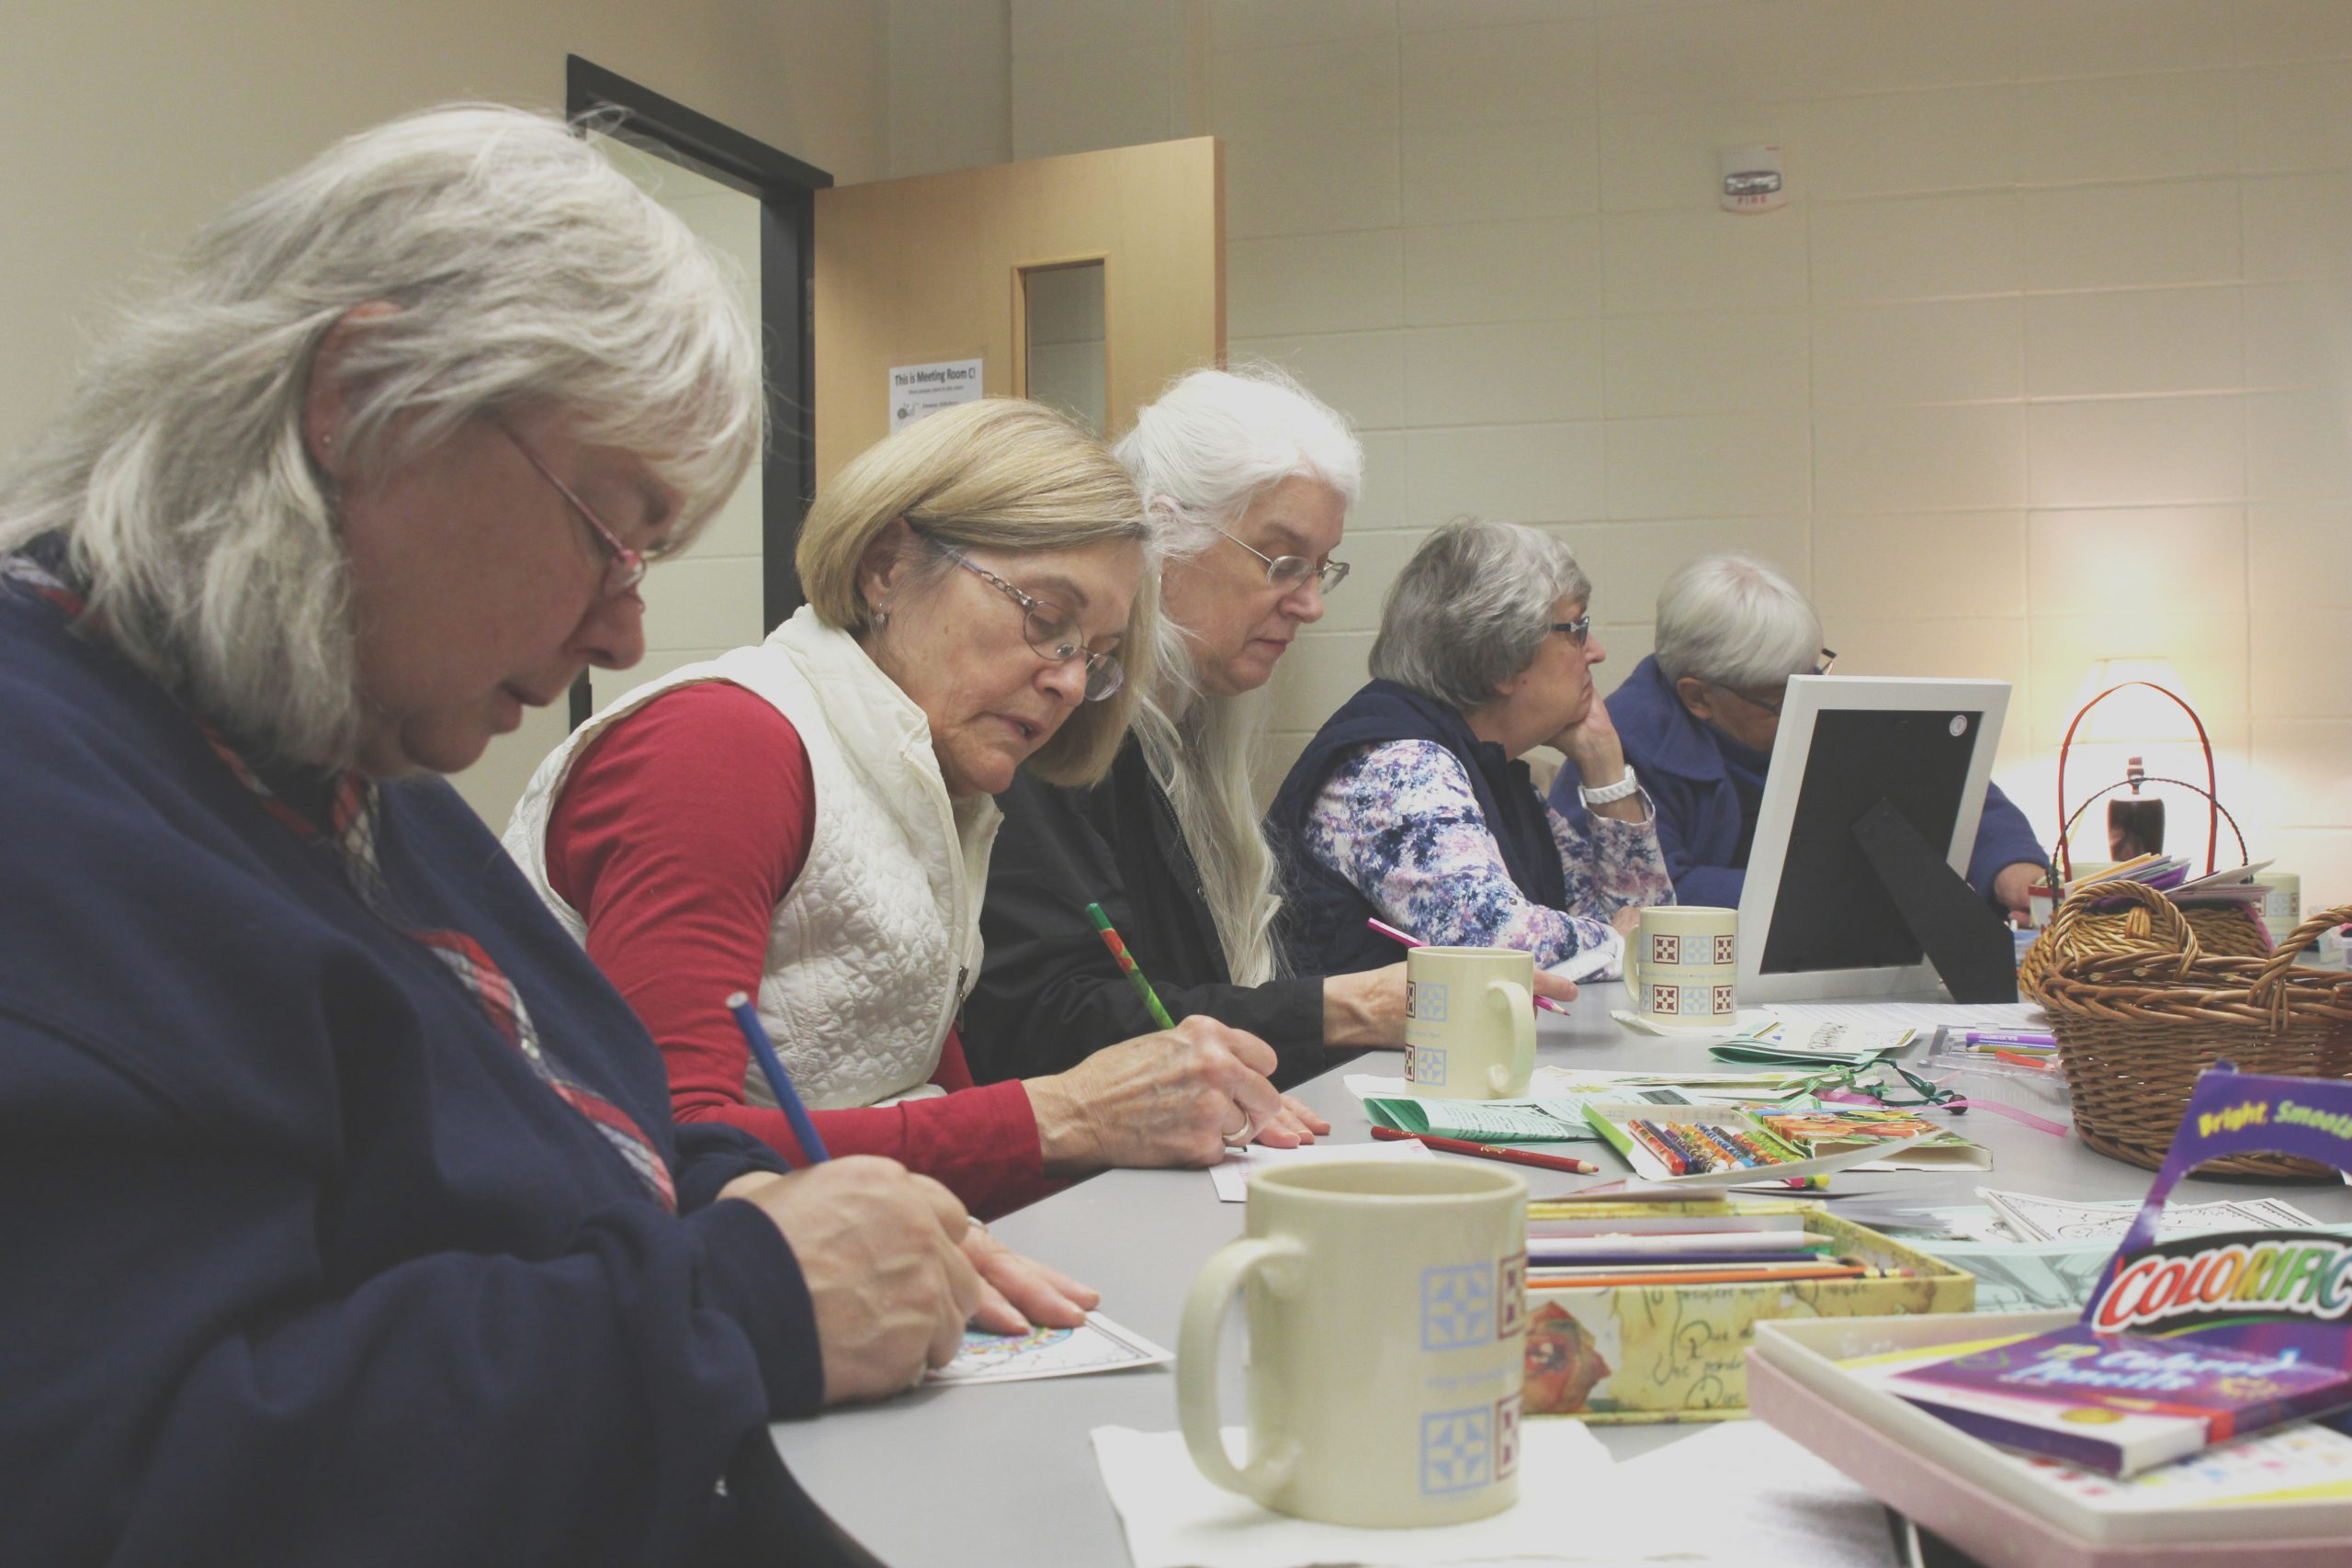 libraries meetup groups into adult coloring craze